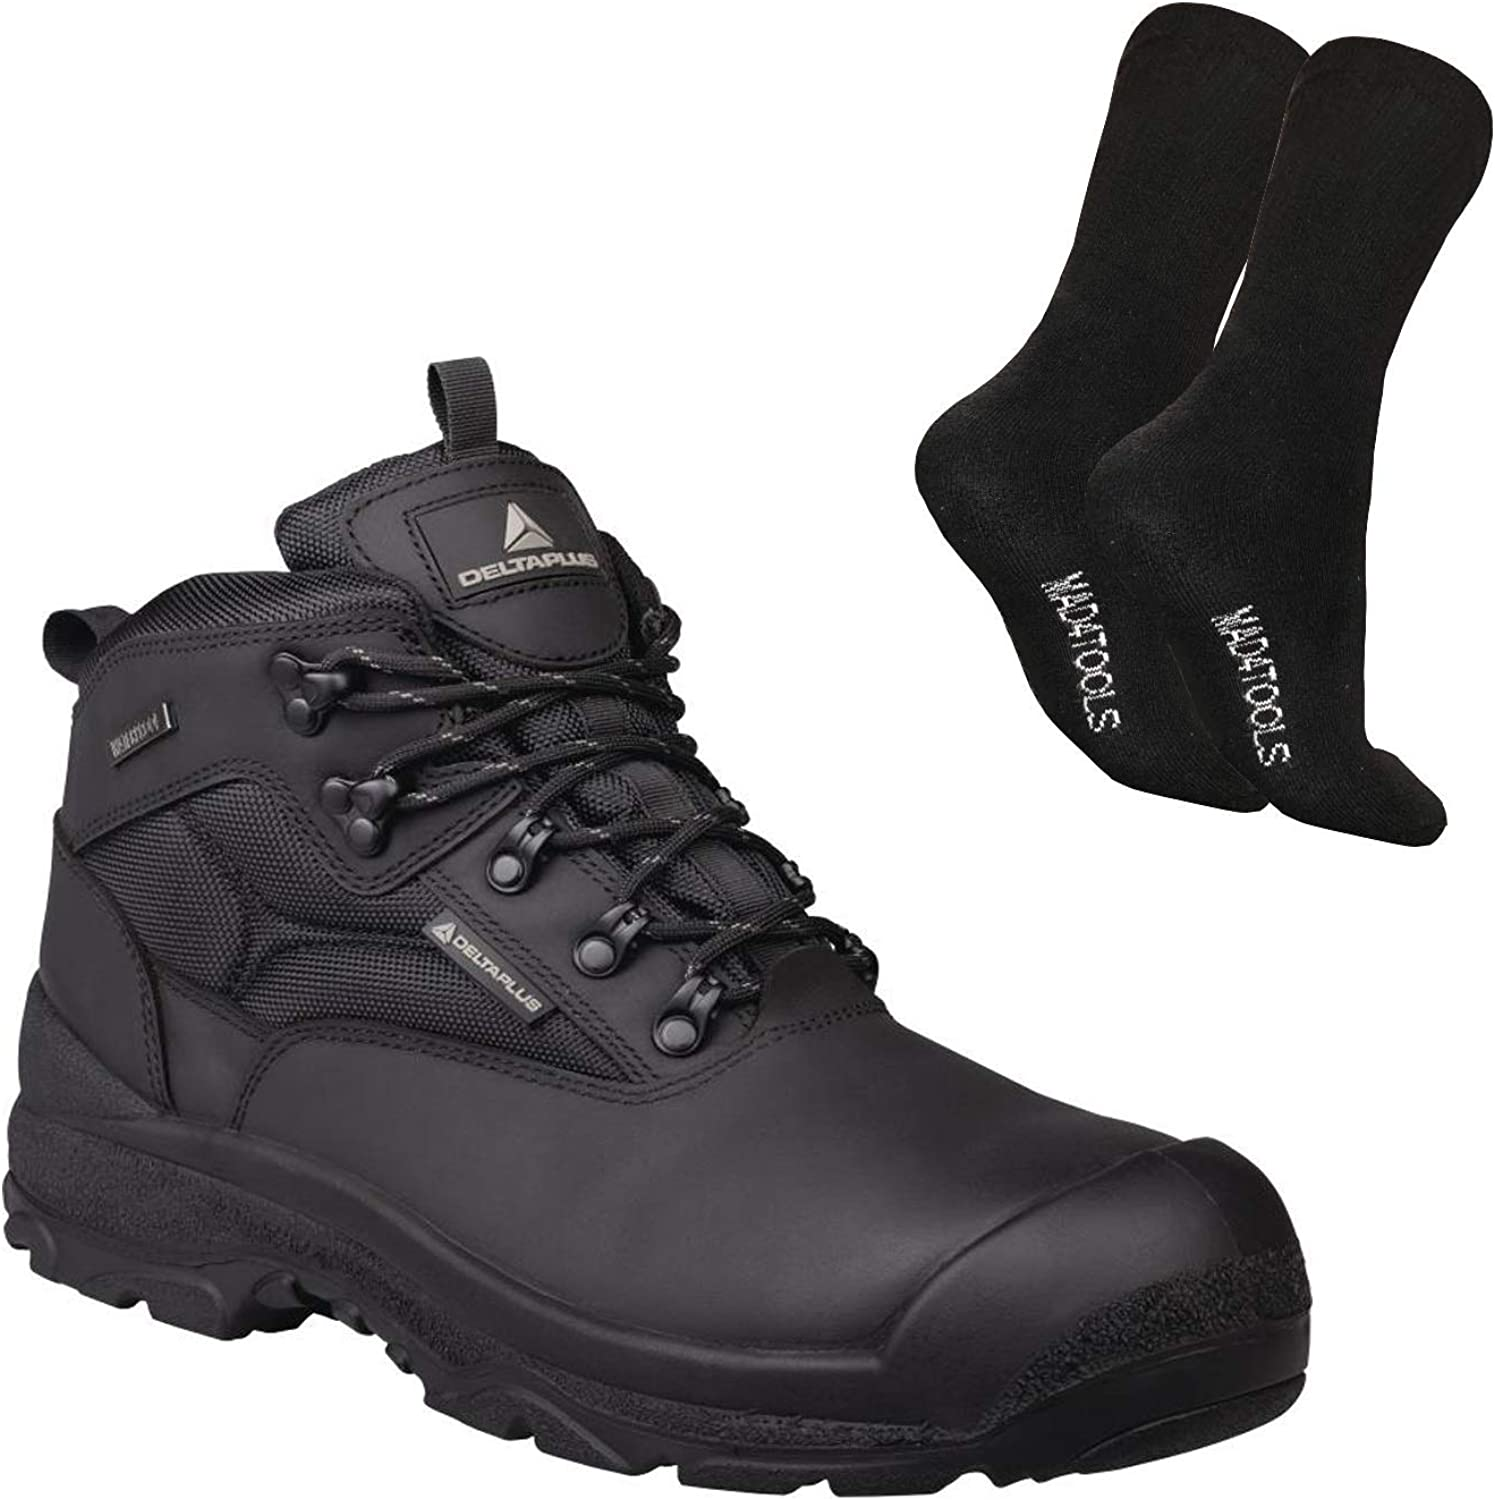 Deltaplus Samy Waterproof Safety Boots & mad4tools Work Socks